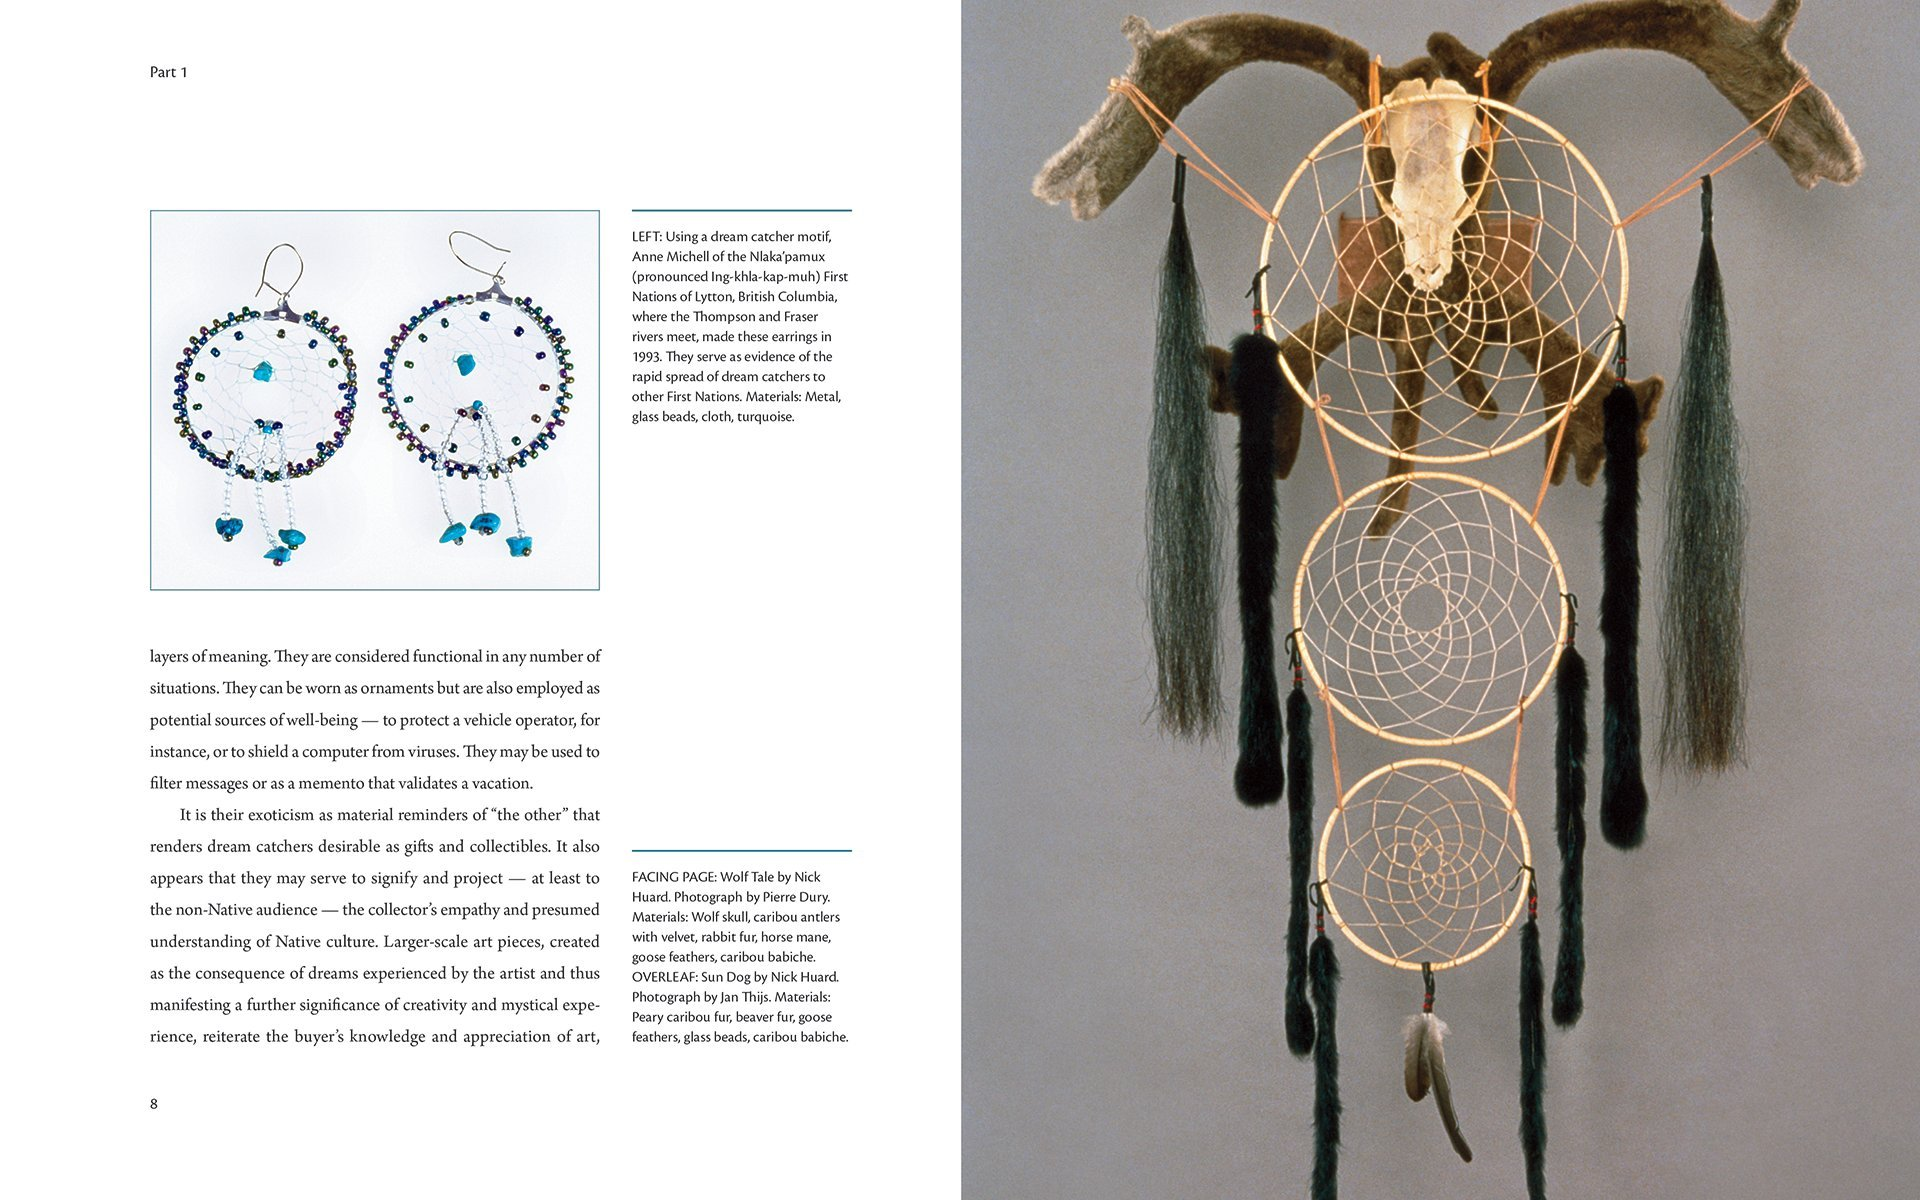 Dream Catcher Significance Dream Catchers Legend Lore and Artifacts Cath Oberholtzer 29